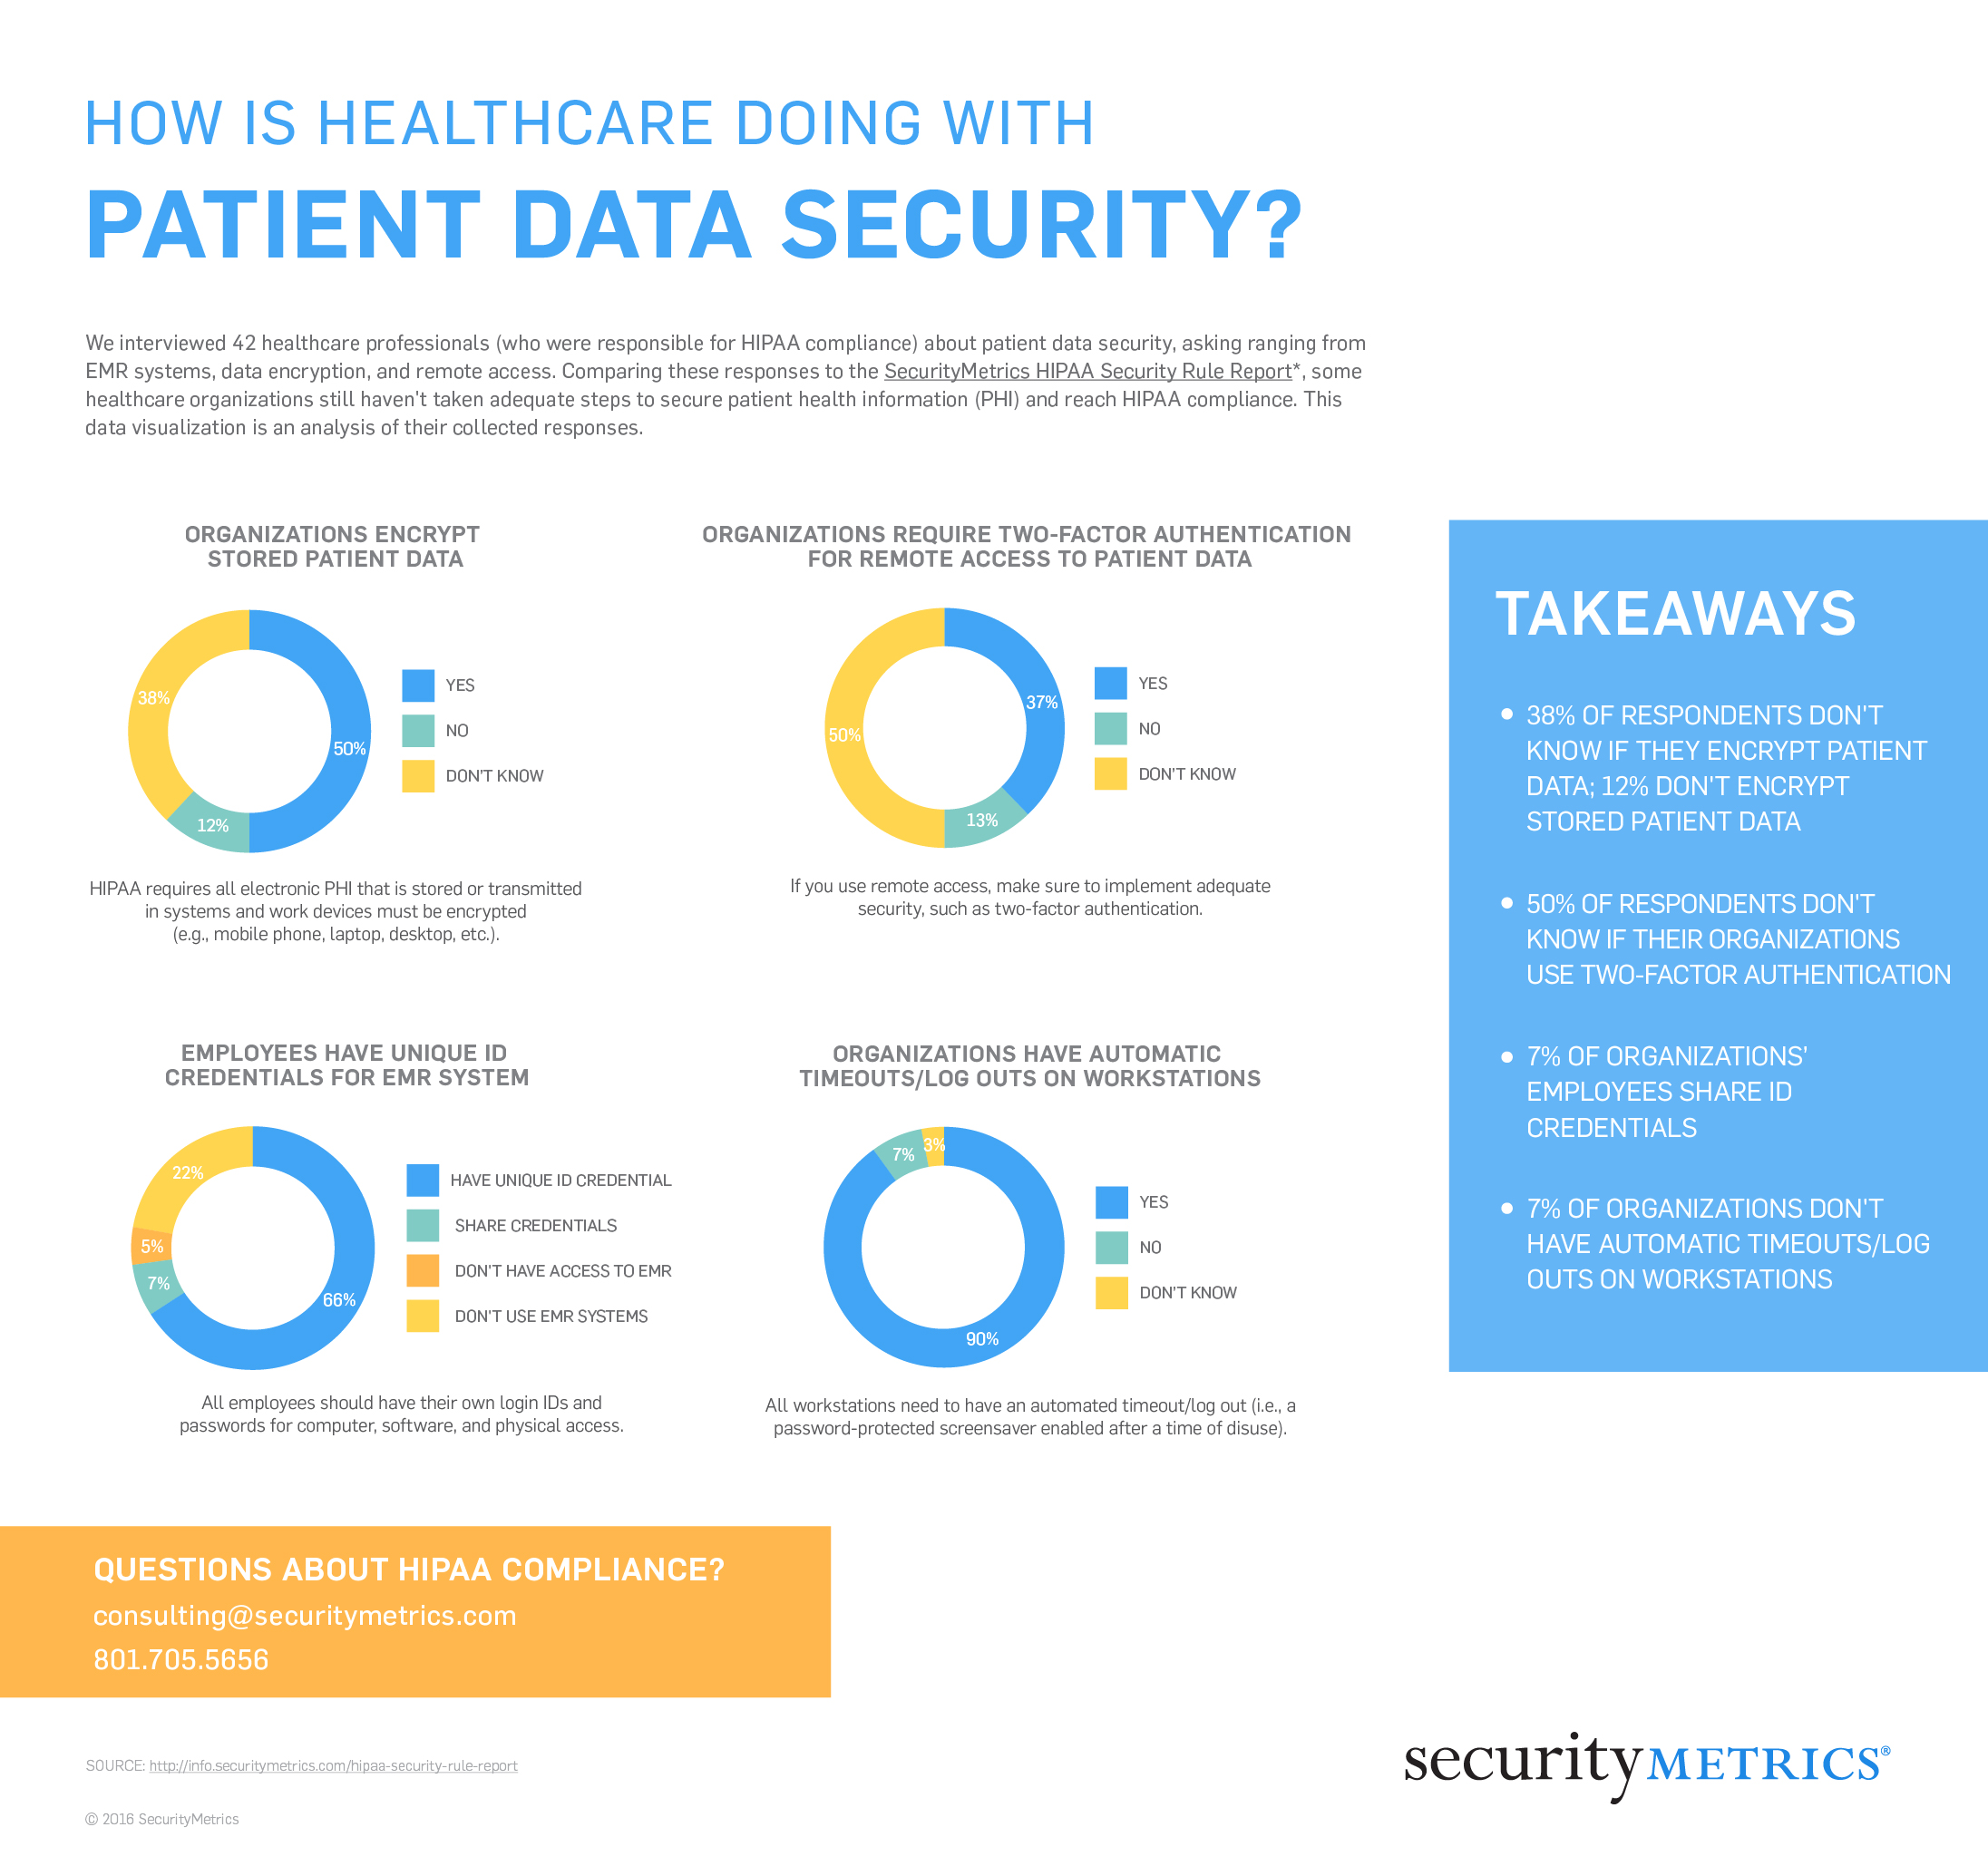 How Is Healthcare Doing With Patient Data Security?